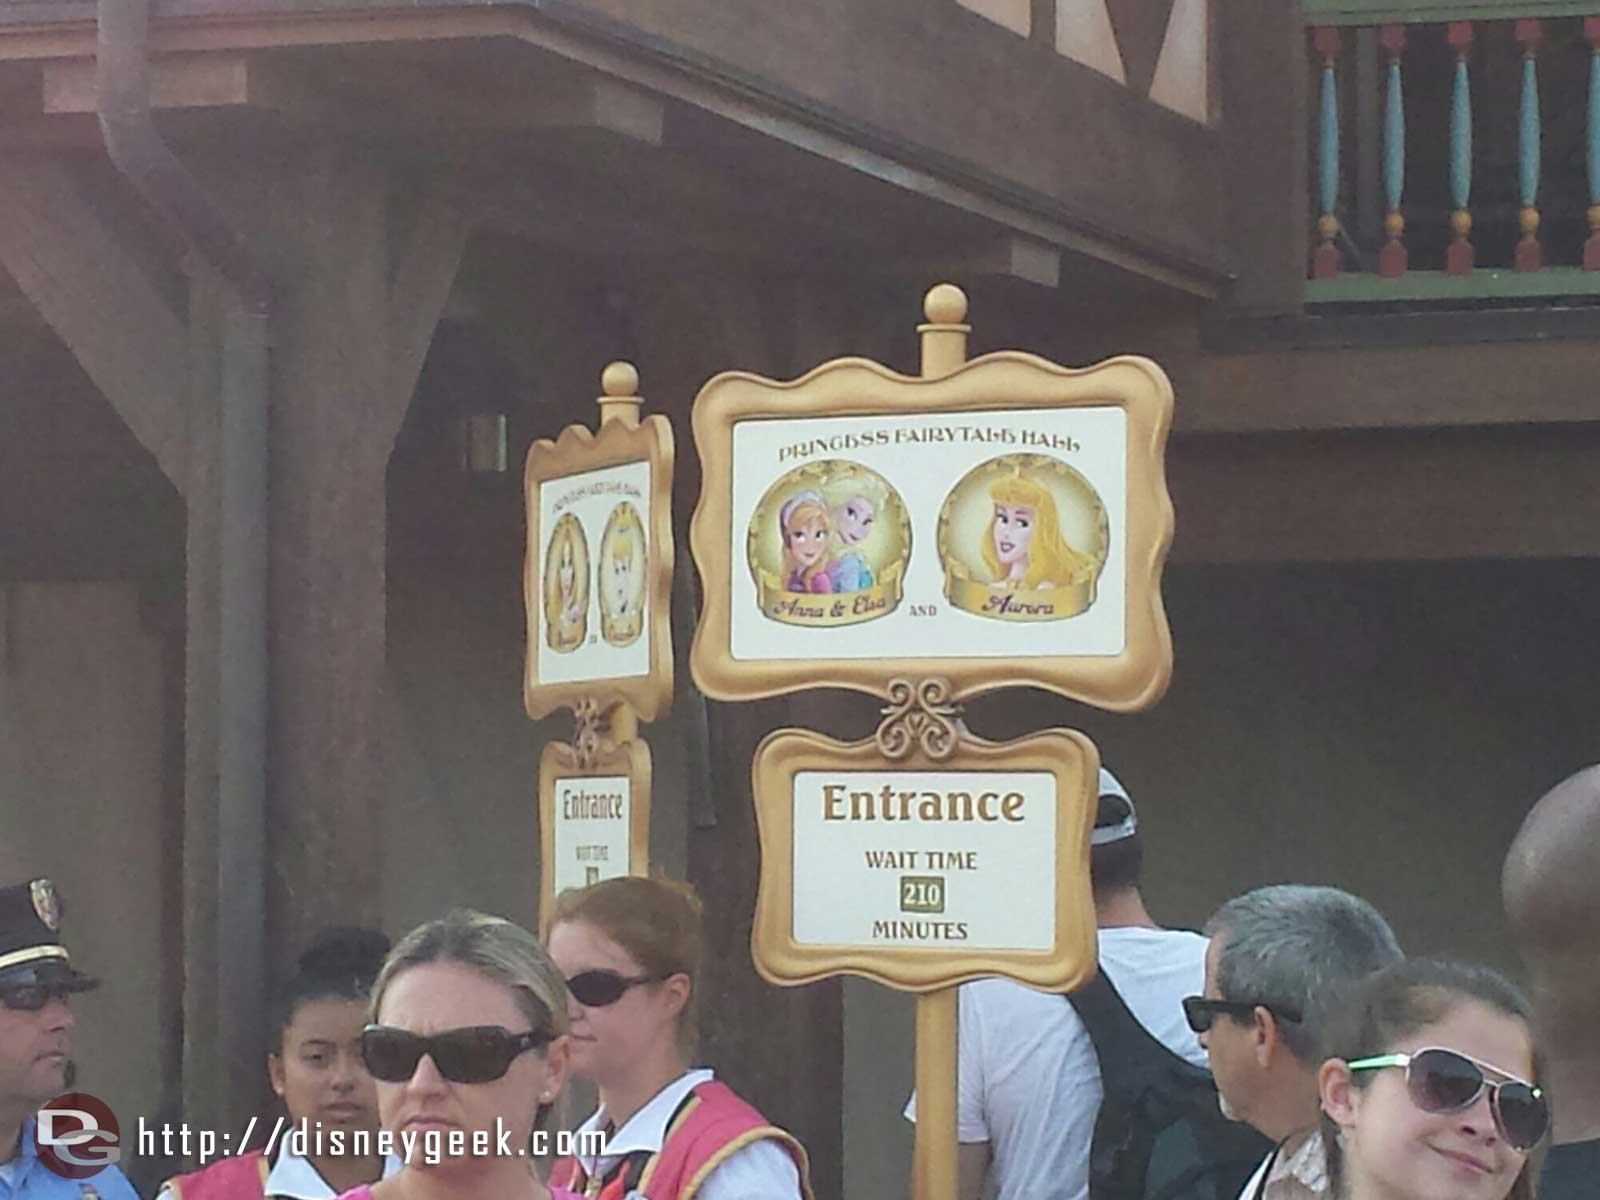 As of 9:08 the posted stand by for Anna & Elsa is 210 minutes